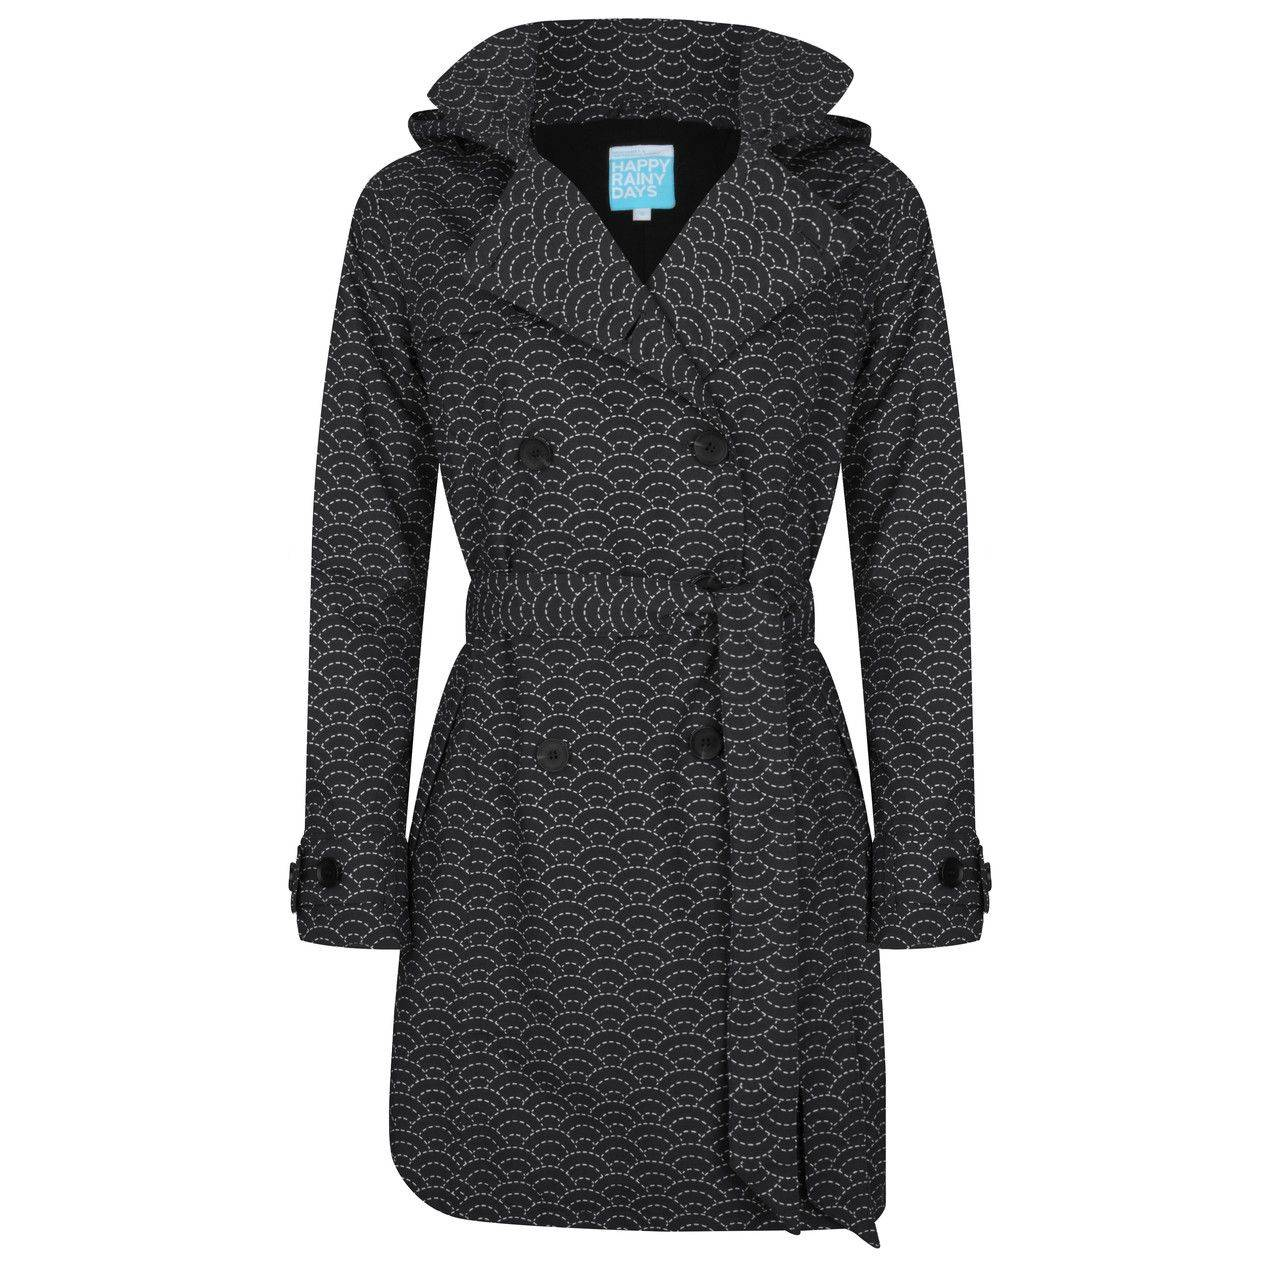 Happy Rainy Days Trench Coat, Black with White Pattern, Color: Black/White Pattern, Size: M